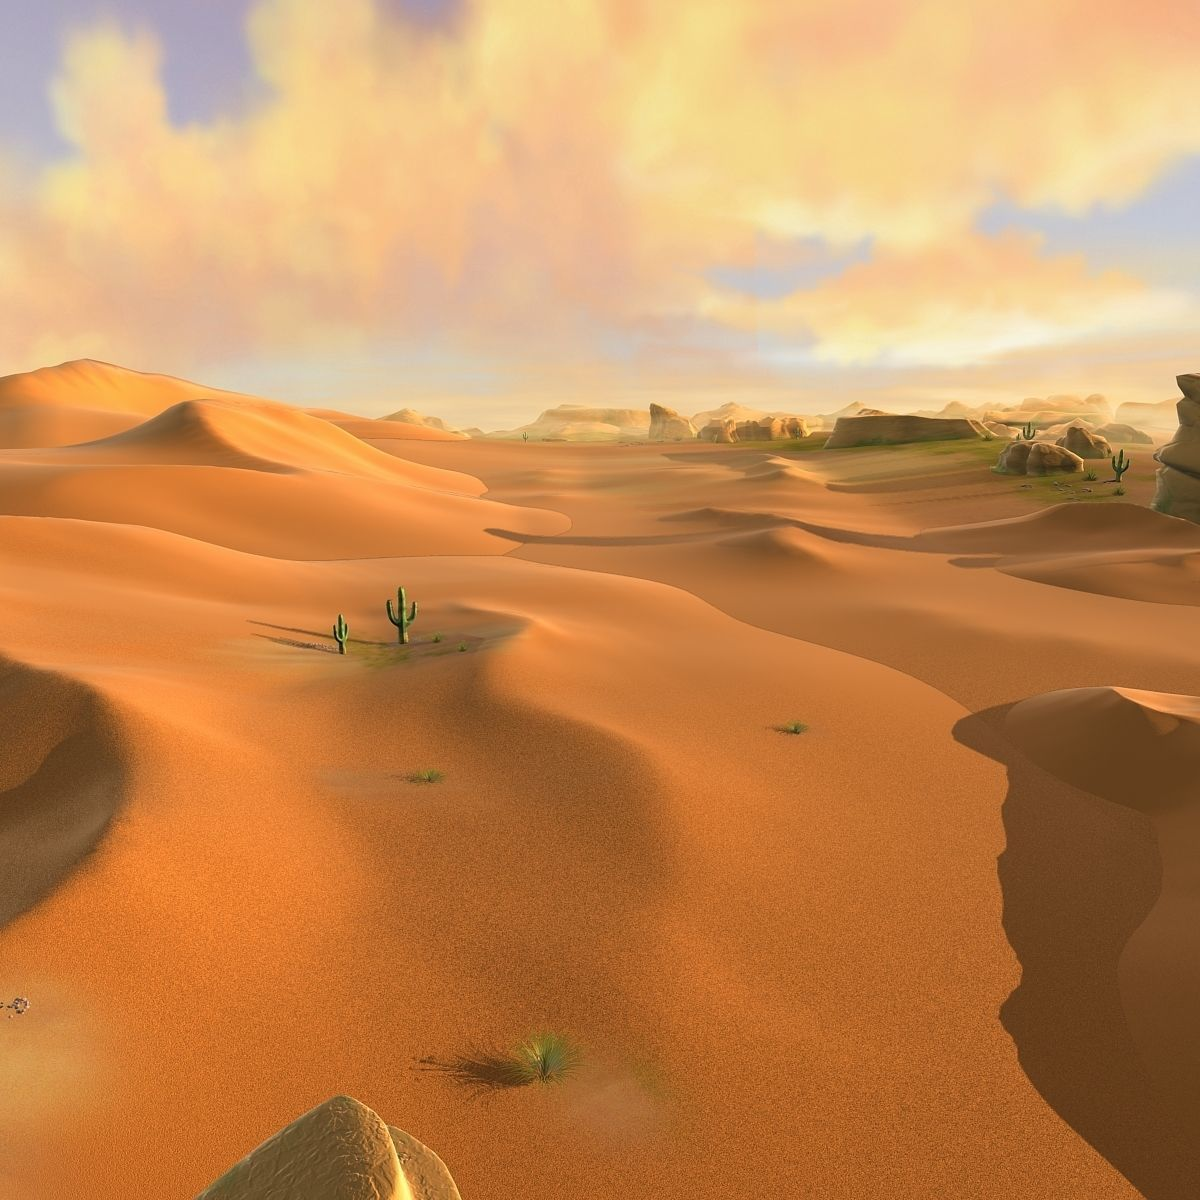 Desert Sand Desert Oasis Wilderness By Peacepark Notes 1 The Scene Includes 79 Low Poly Model And 18 Textures Sand Desert Desert Concept Art Desert Cartoon